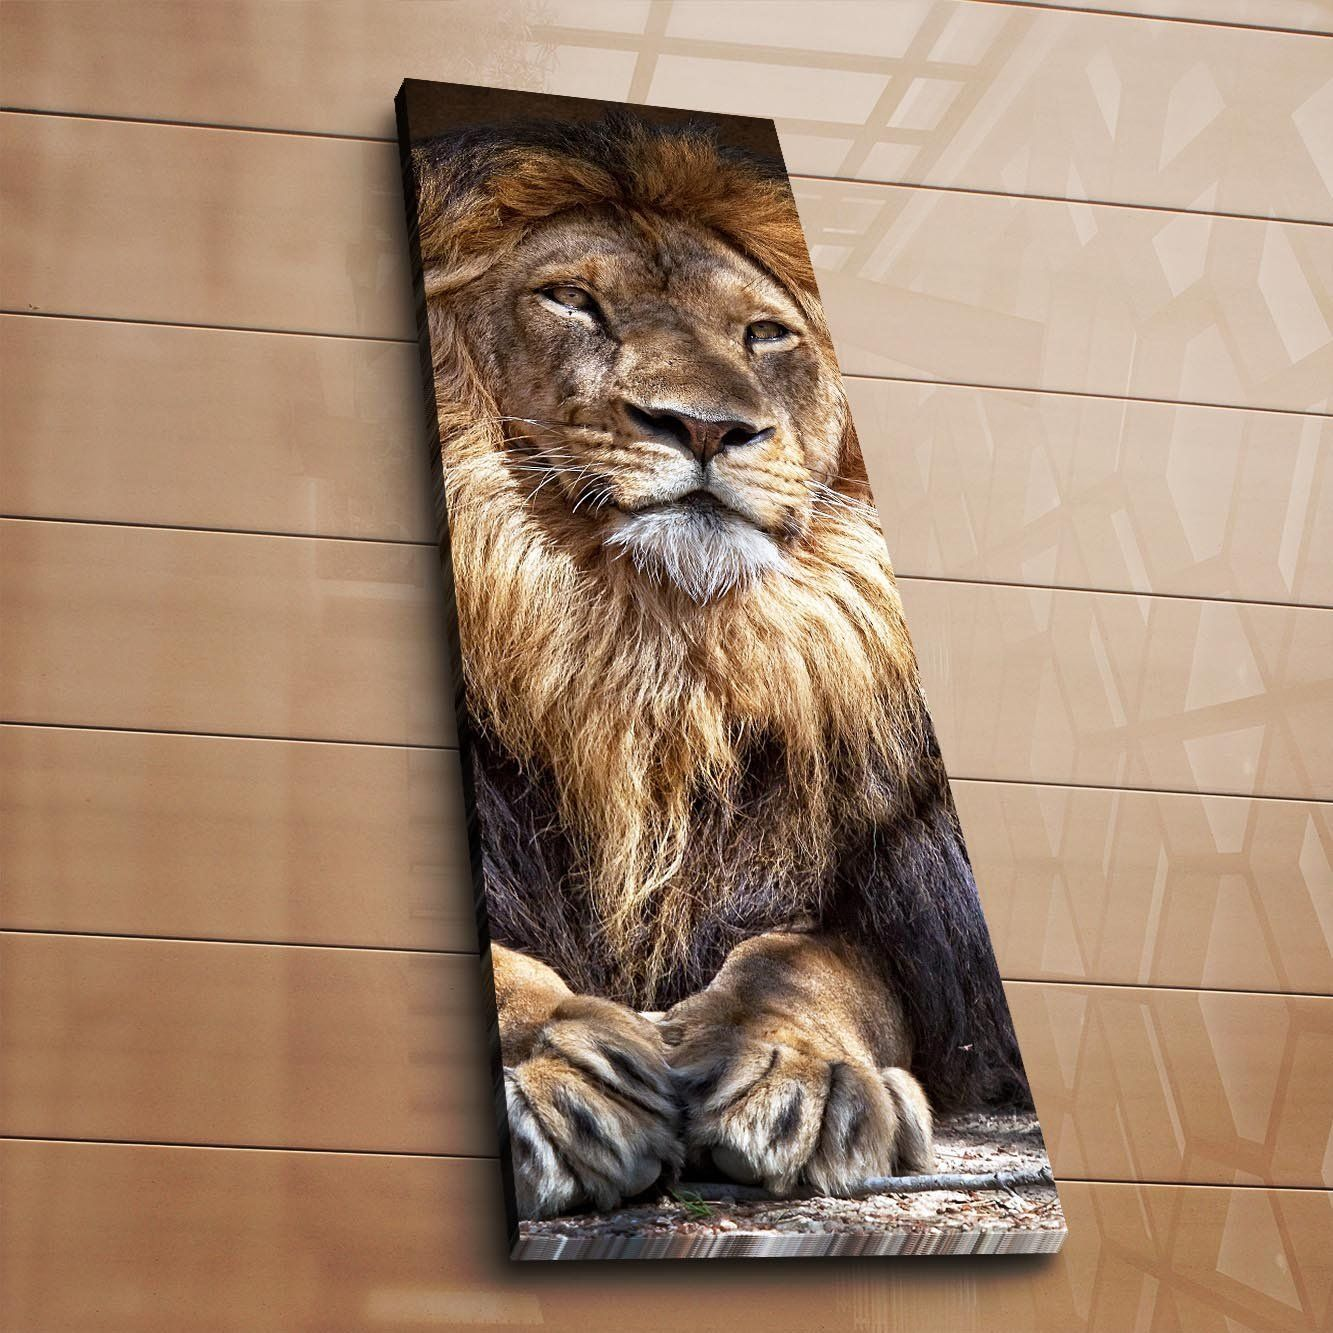 Lamodahome Decorative Canvas Wall Art 12 X 36 Wooden Thick Frame Painting Lion Animal King Royal Cat Natural Mane Animal Canvas Canvas Wall Art Painting Frames